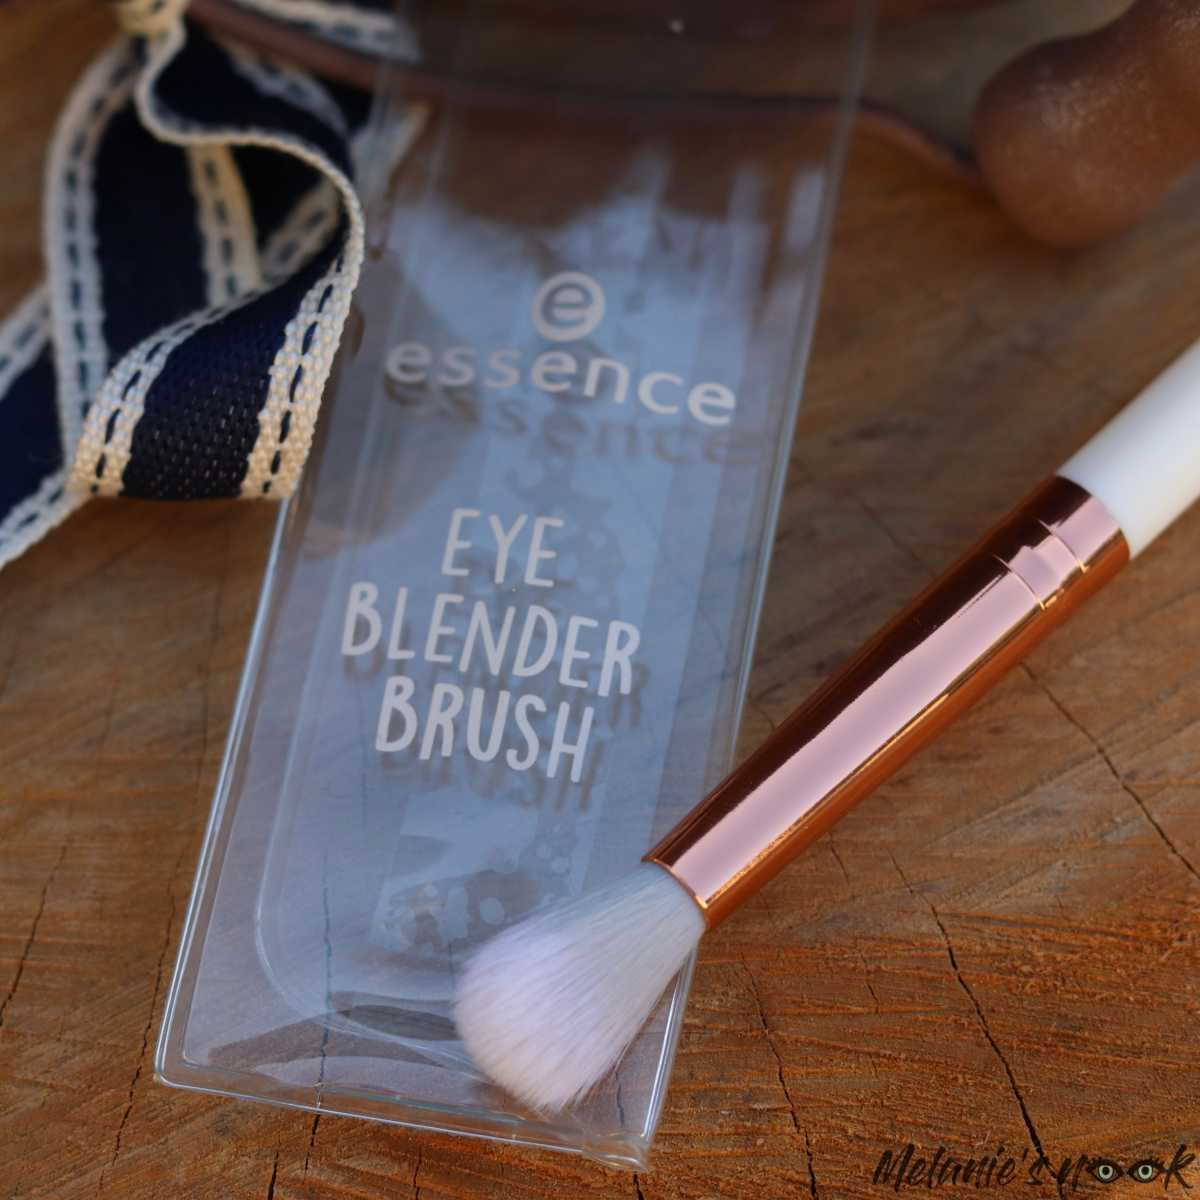 Essence Eye Makeup Brushes - Blender